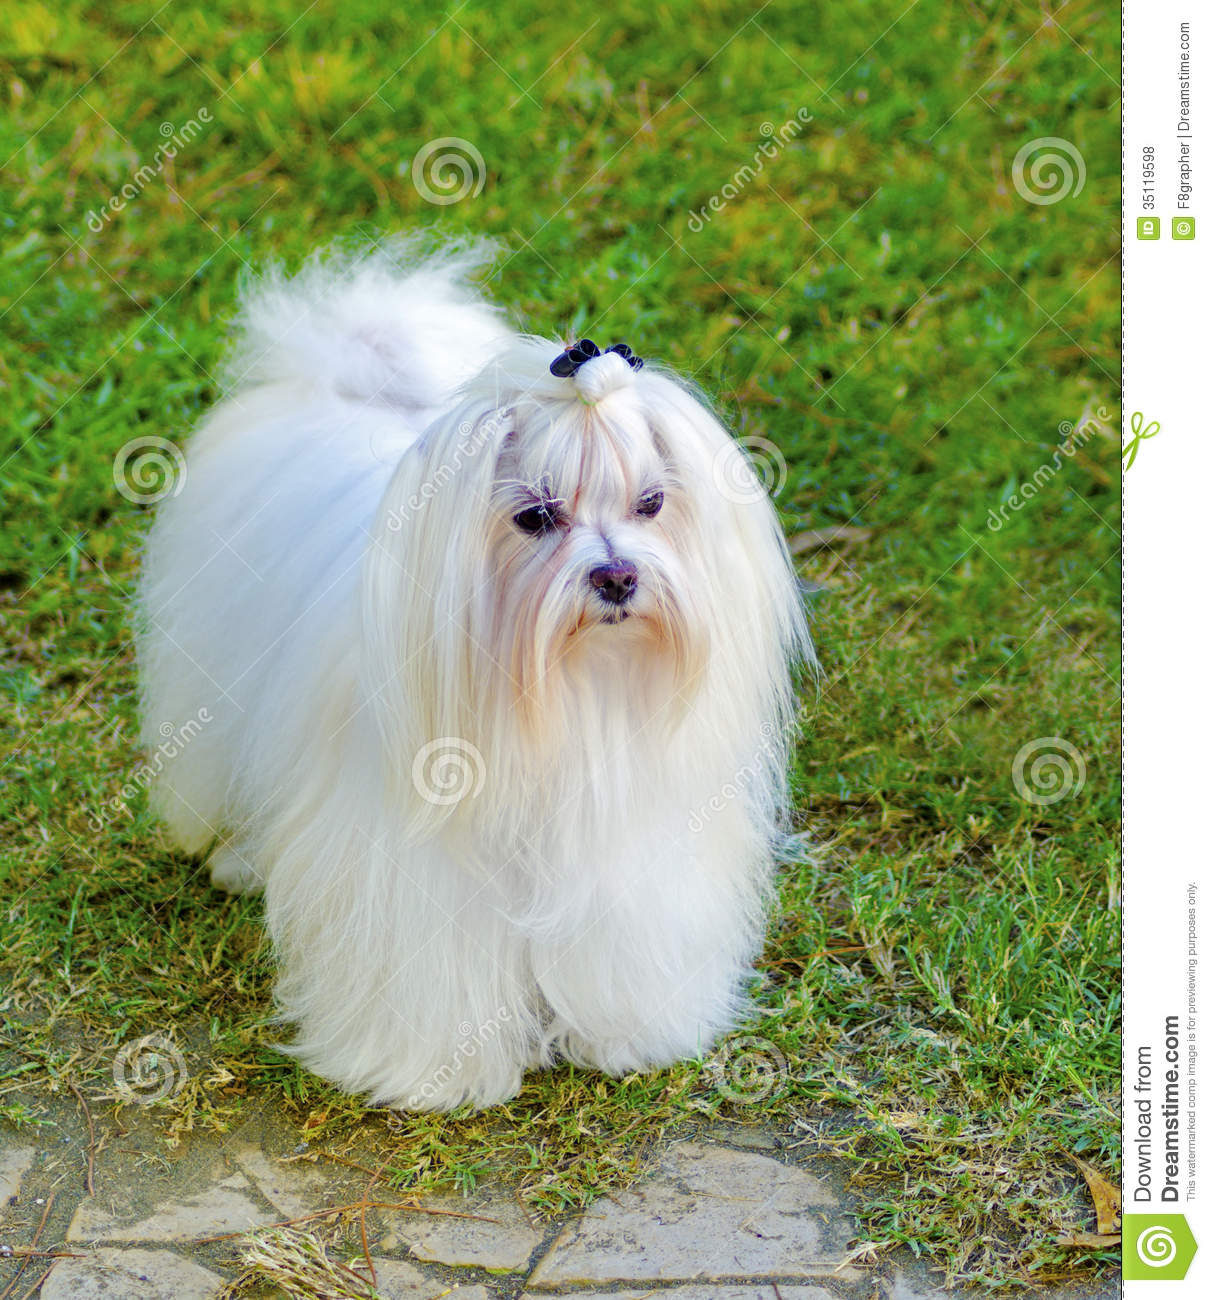 long white coat standing on the lawn. Maltese dogs have silky hair and